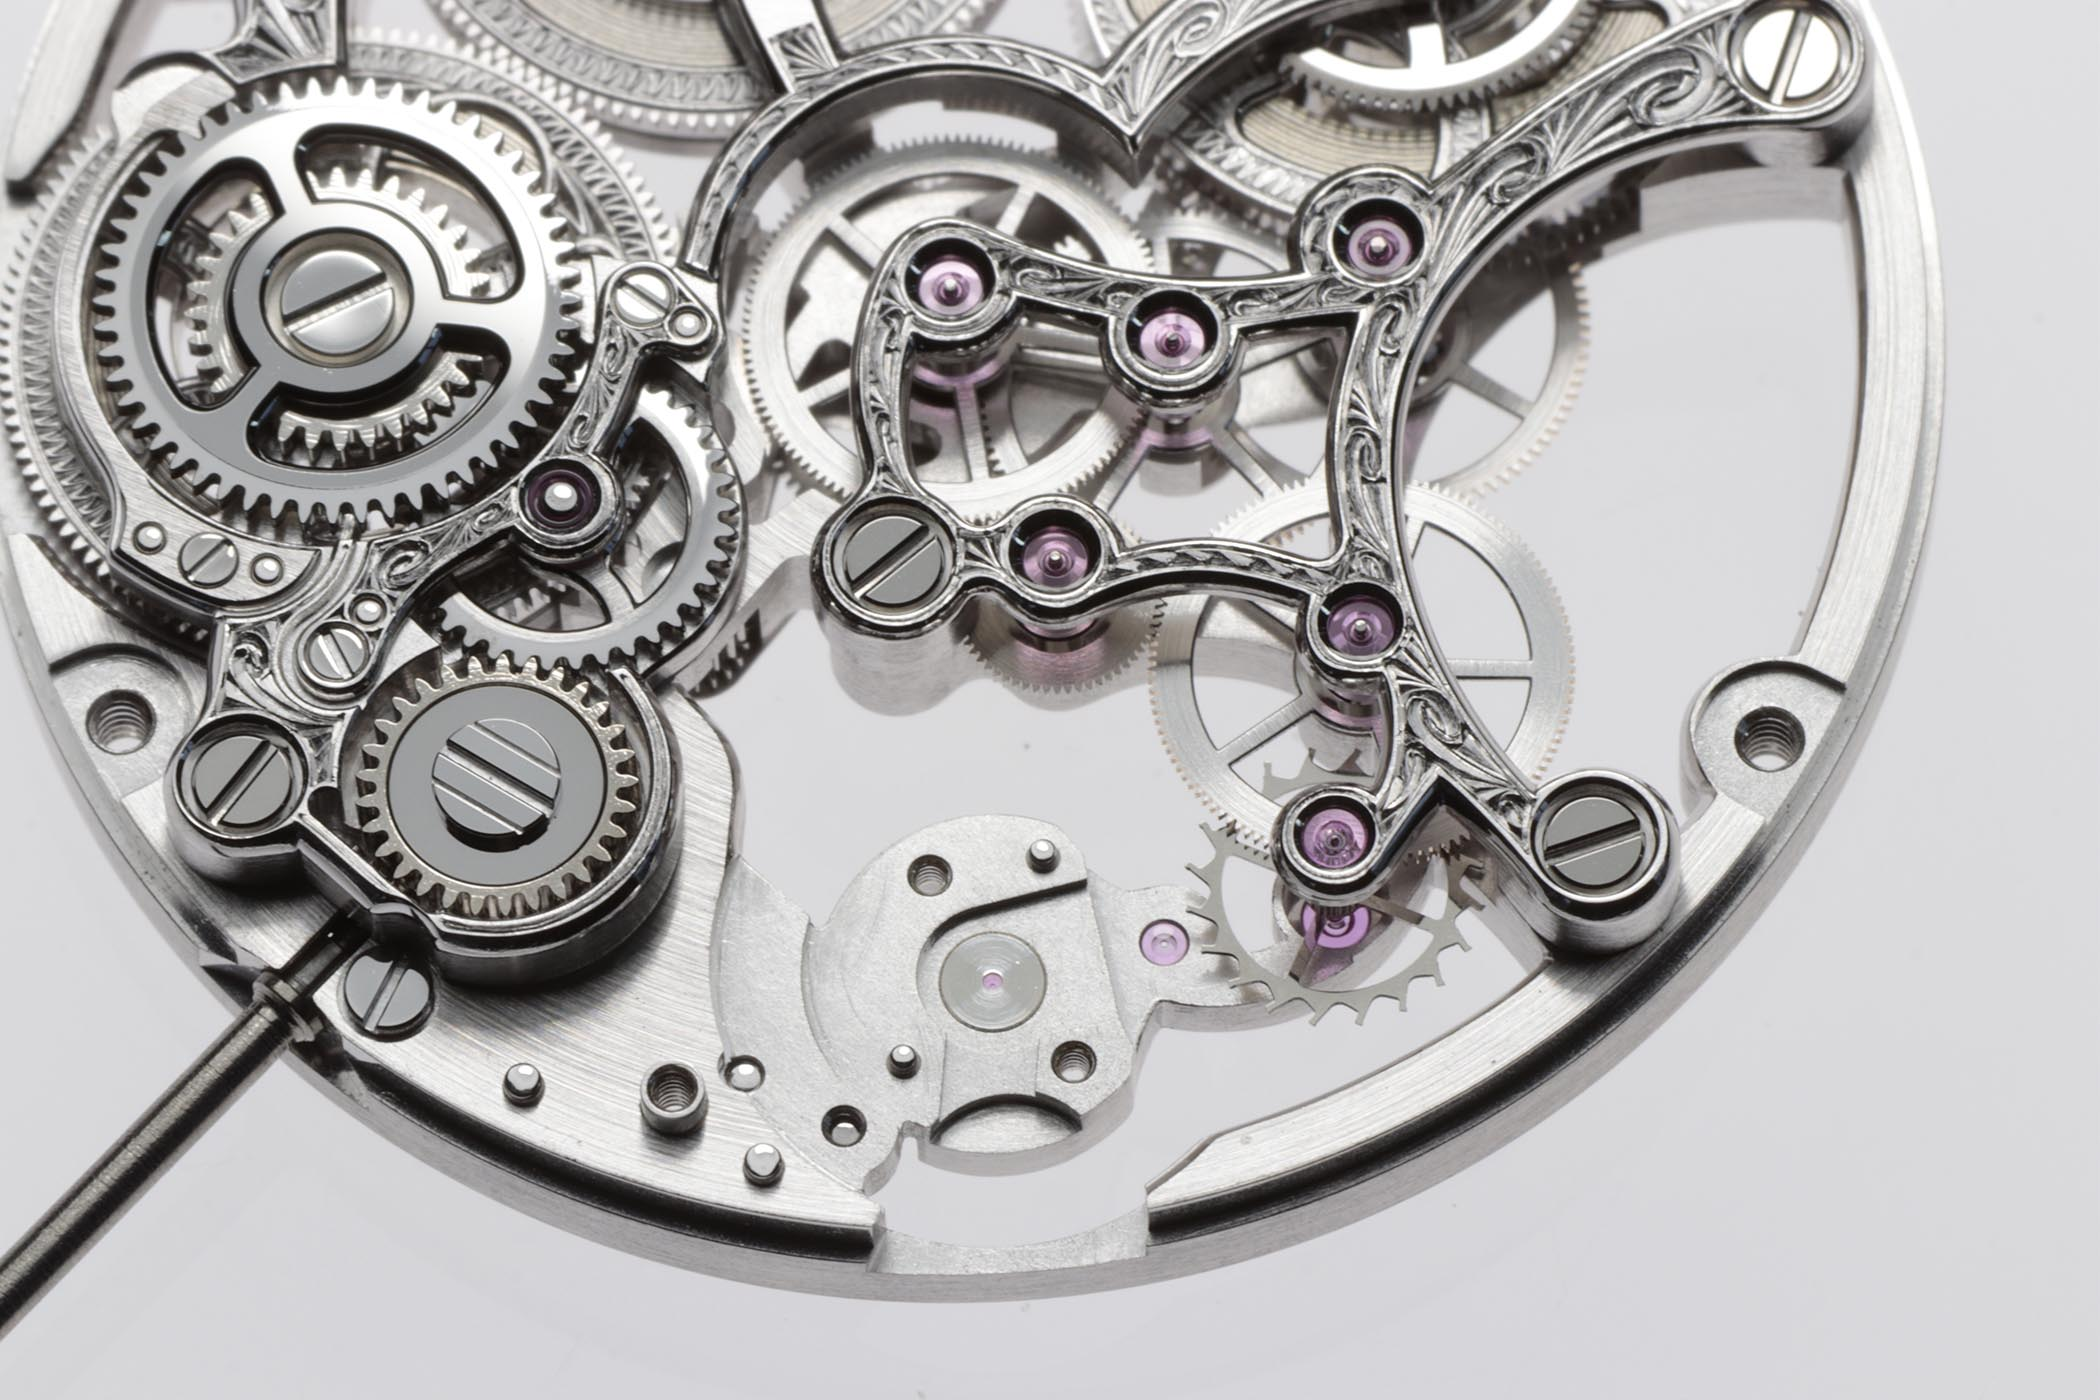 Blancpain Villeret Squelette 8 jours Deconstructed by The Naked Watchmaker - 2